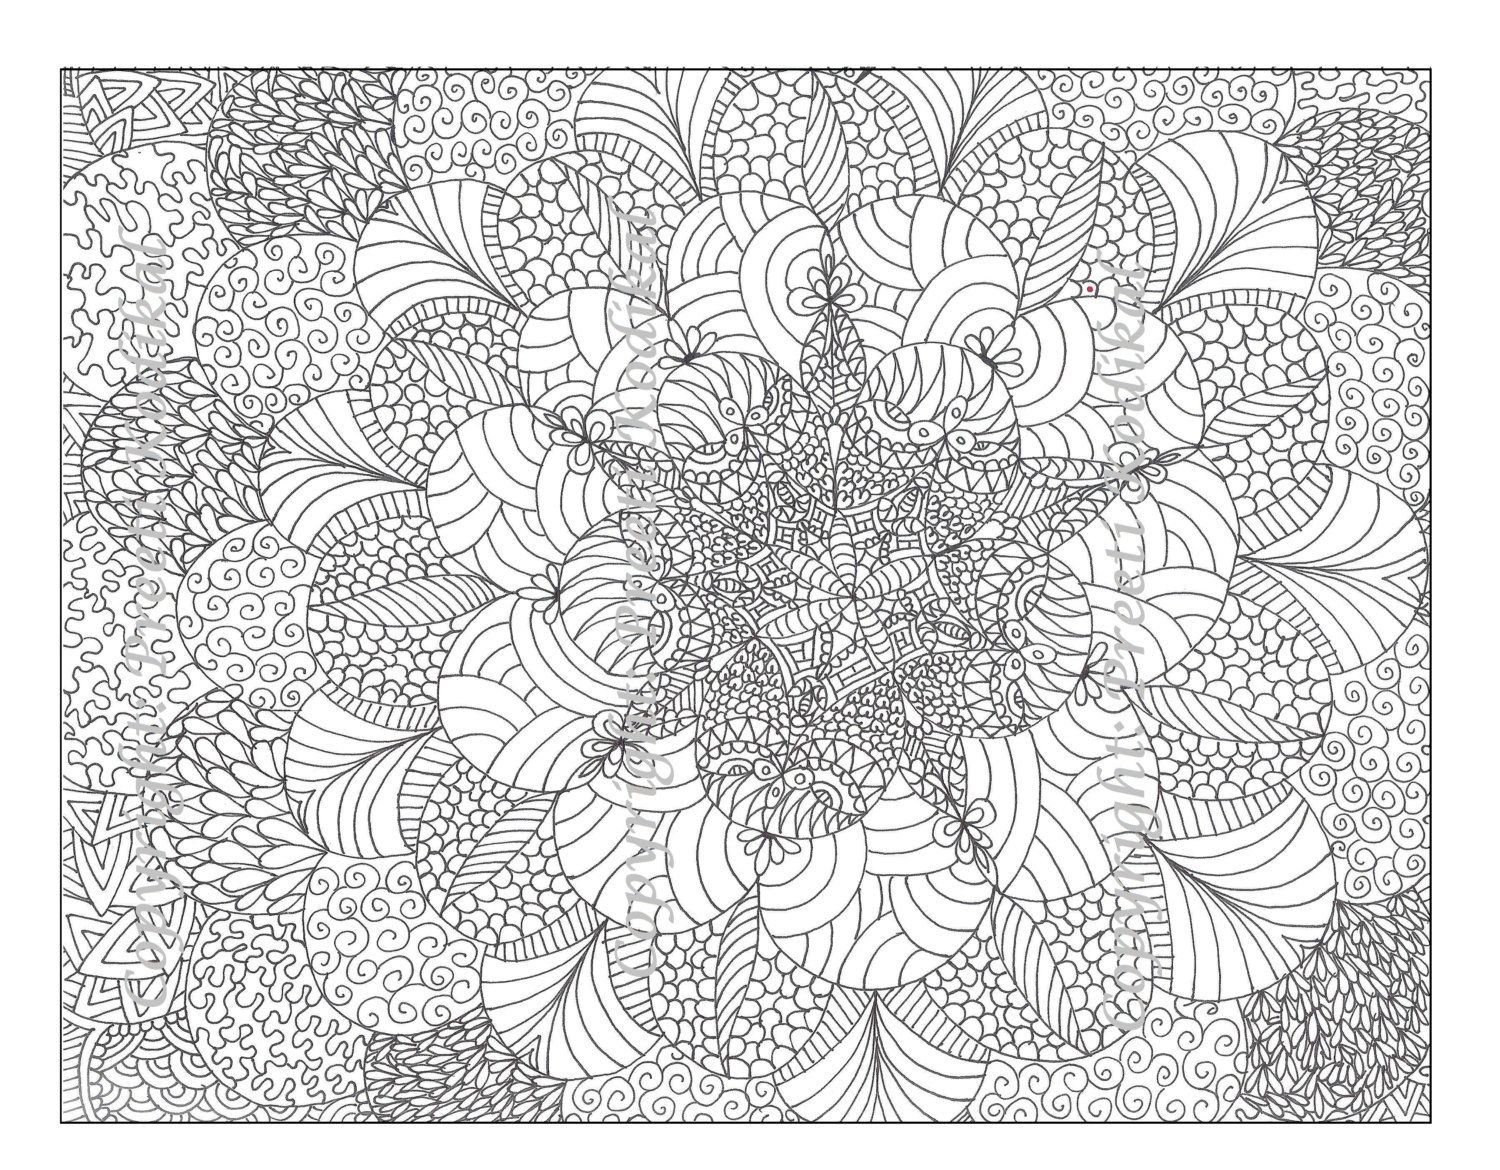 Printable Hard Coloring Pages For S - High Quality Coloring Pages ...